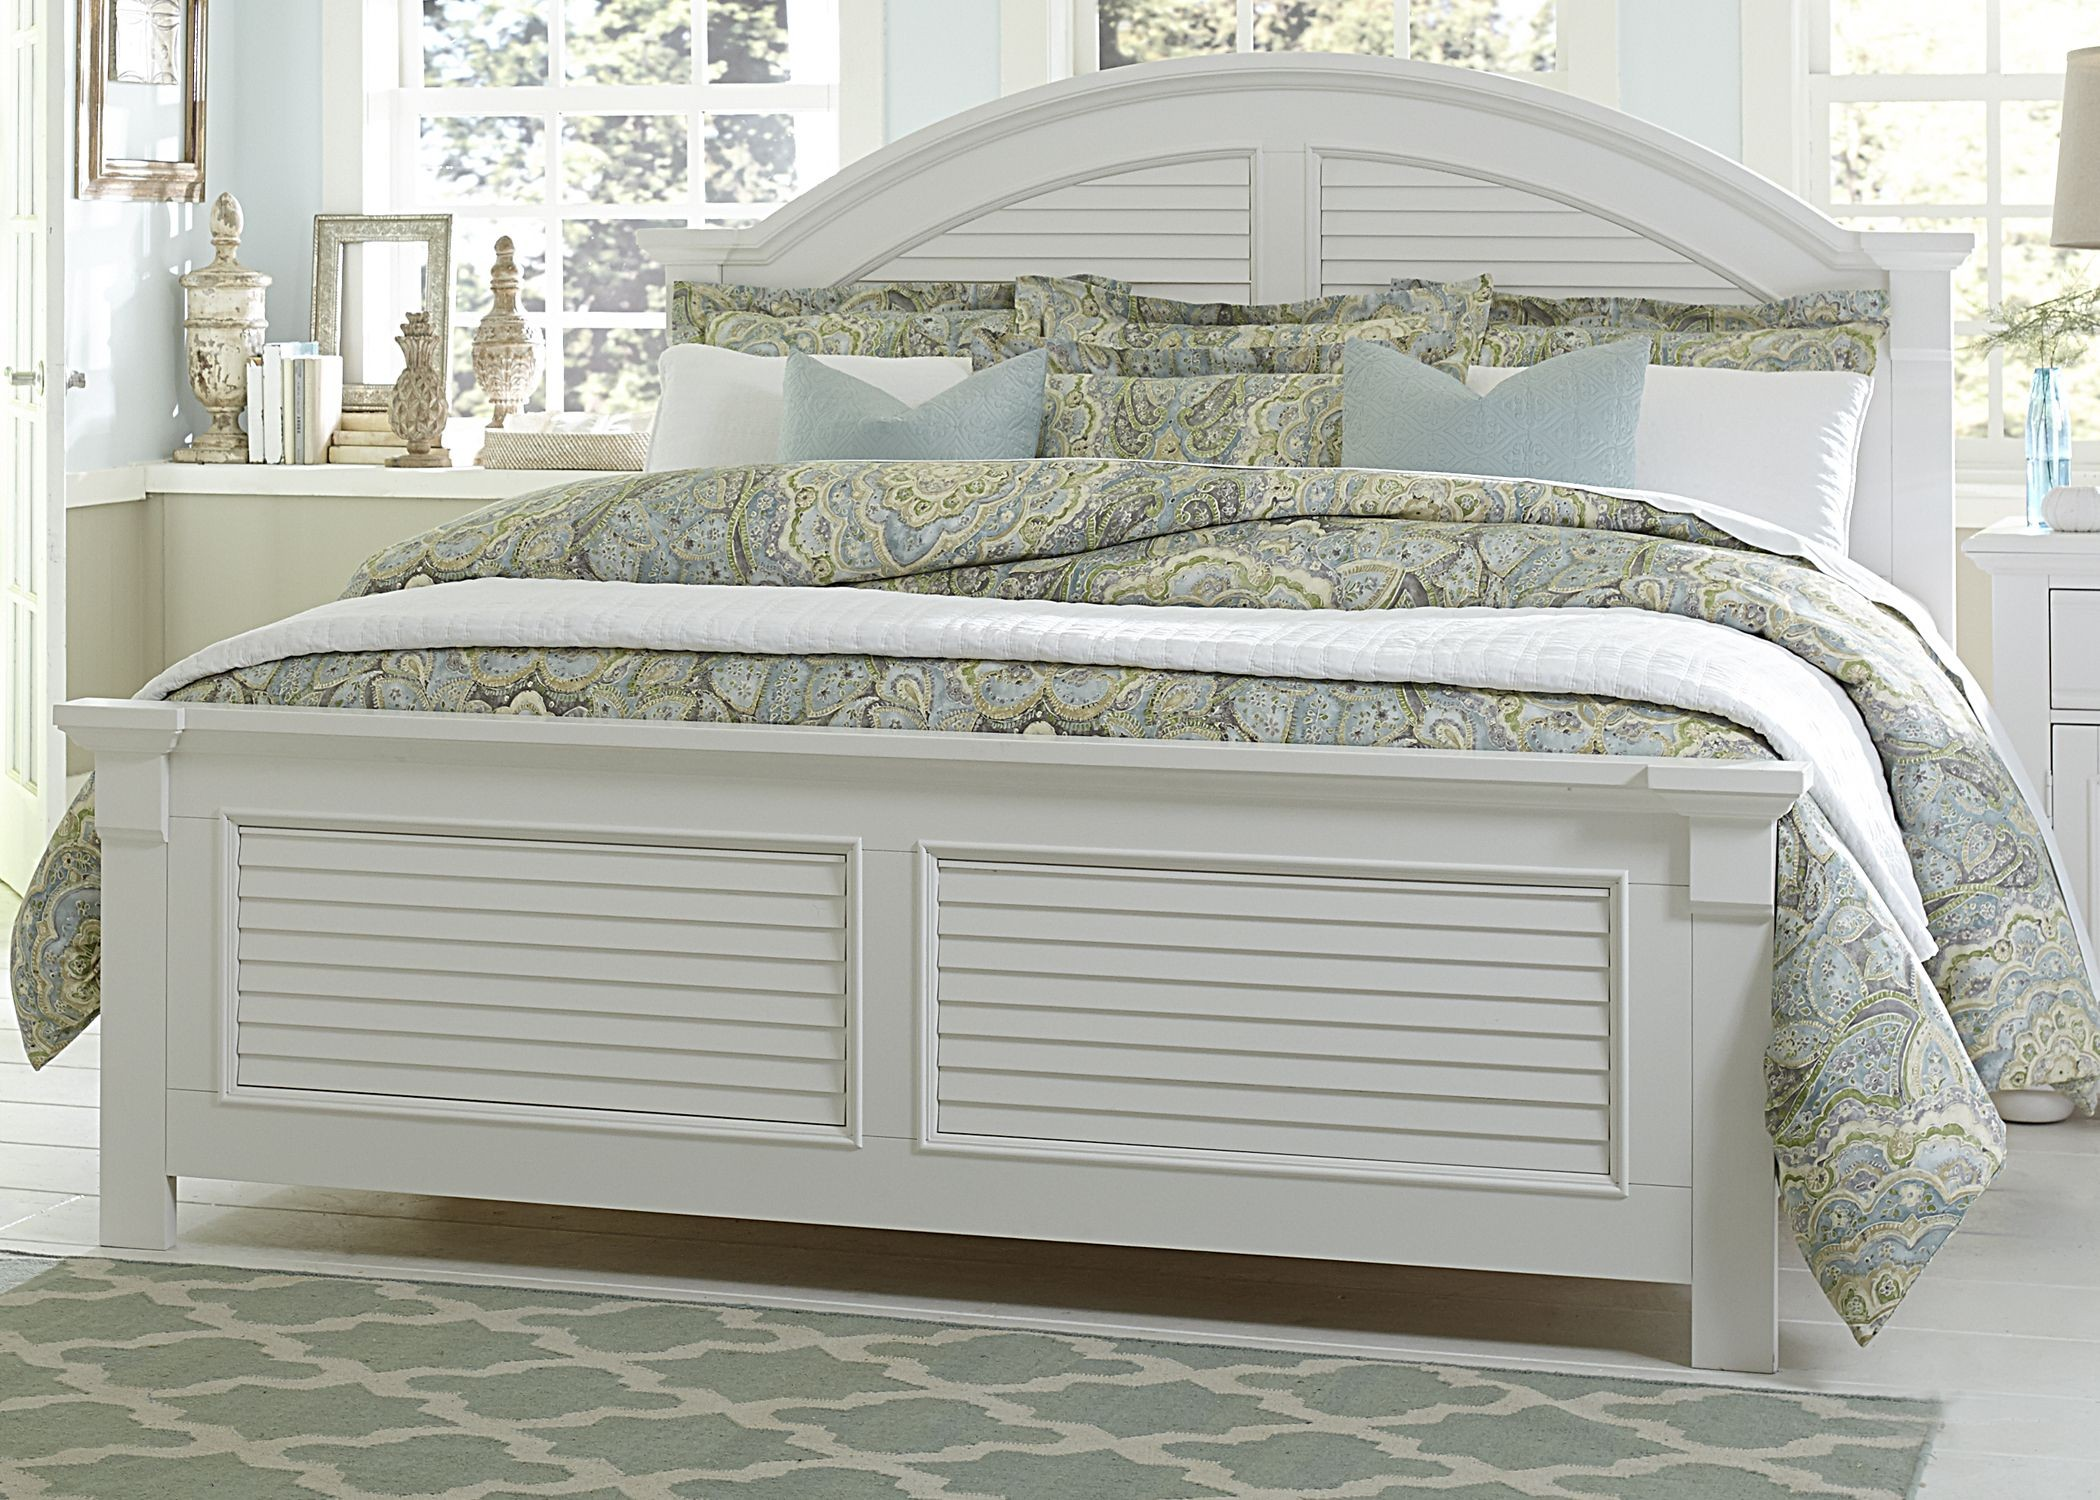 Summer House Oyster White Panel Storage Bedroom Set Media Gallery 1